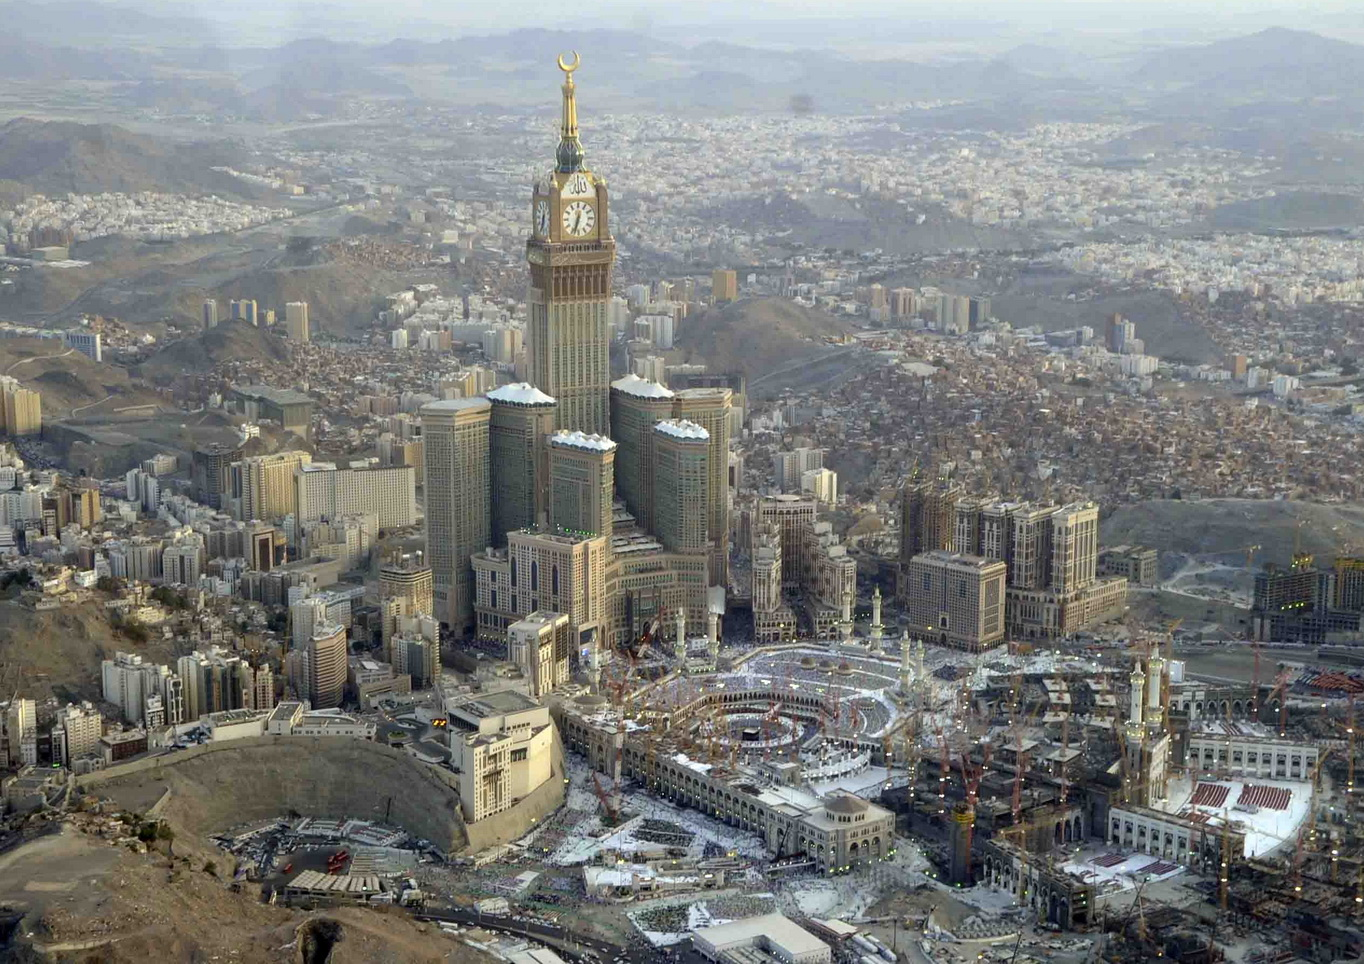 Abraj Al Bait Towers - Tallest Building in the World - Beautiful Global